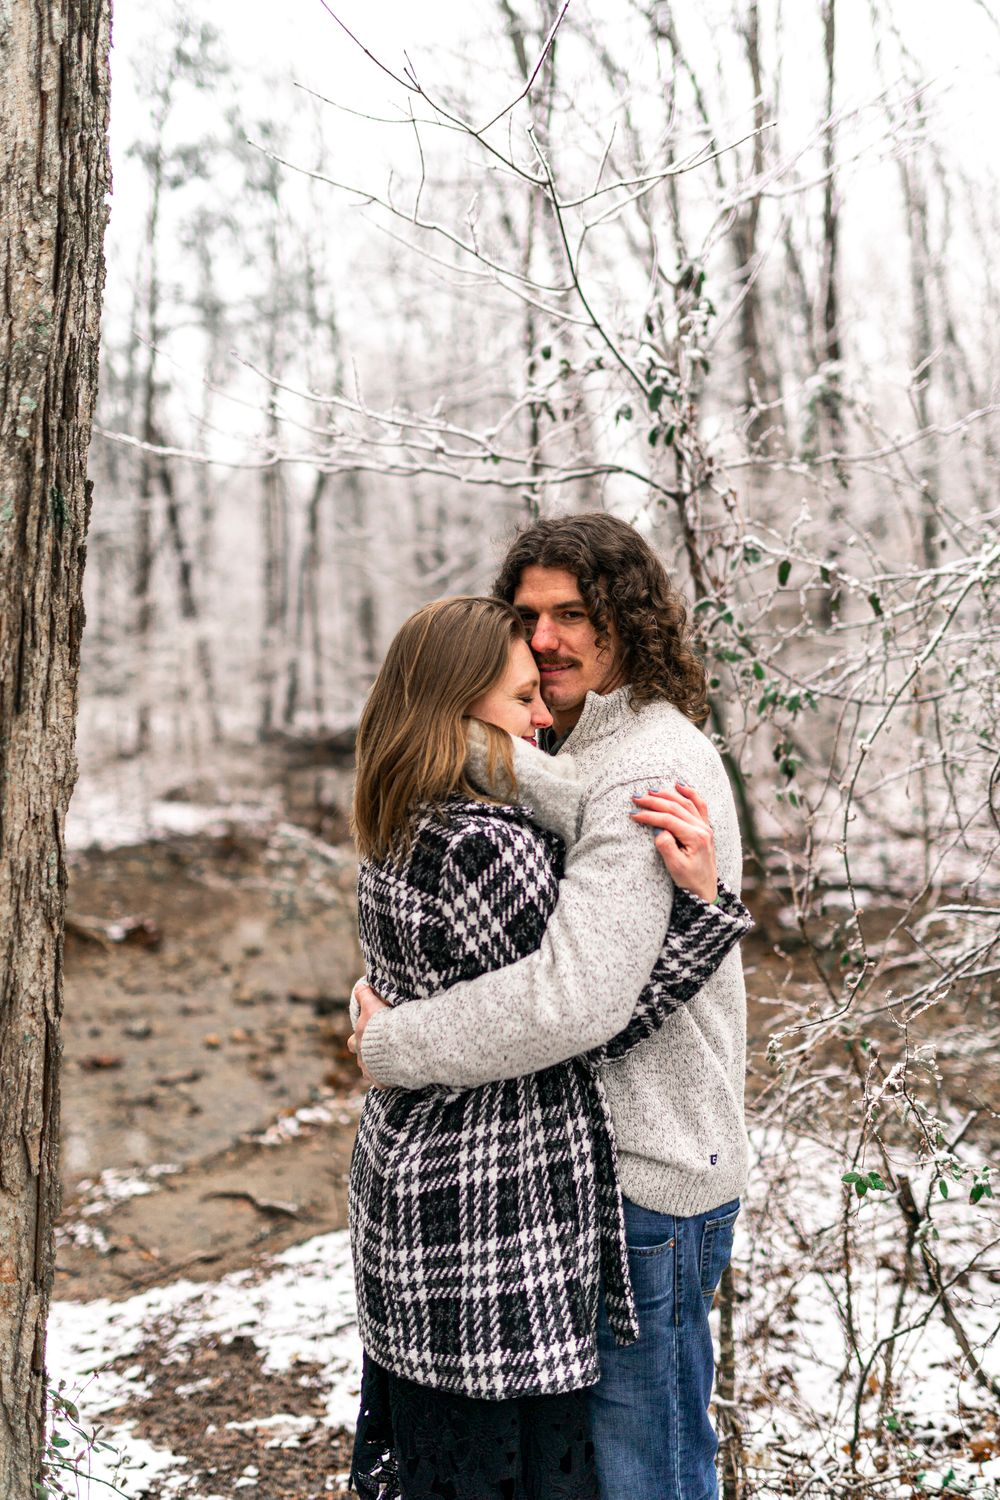 Alex and Chad holding each other in the snowy wilderness at Bernheim Forest in Kentucky